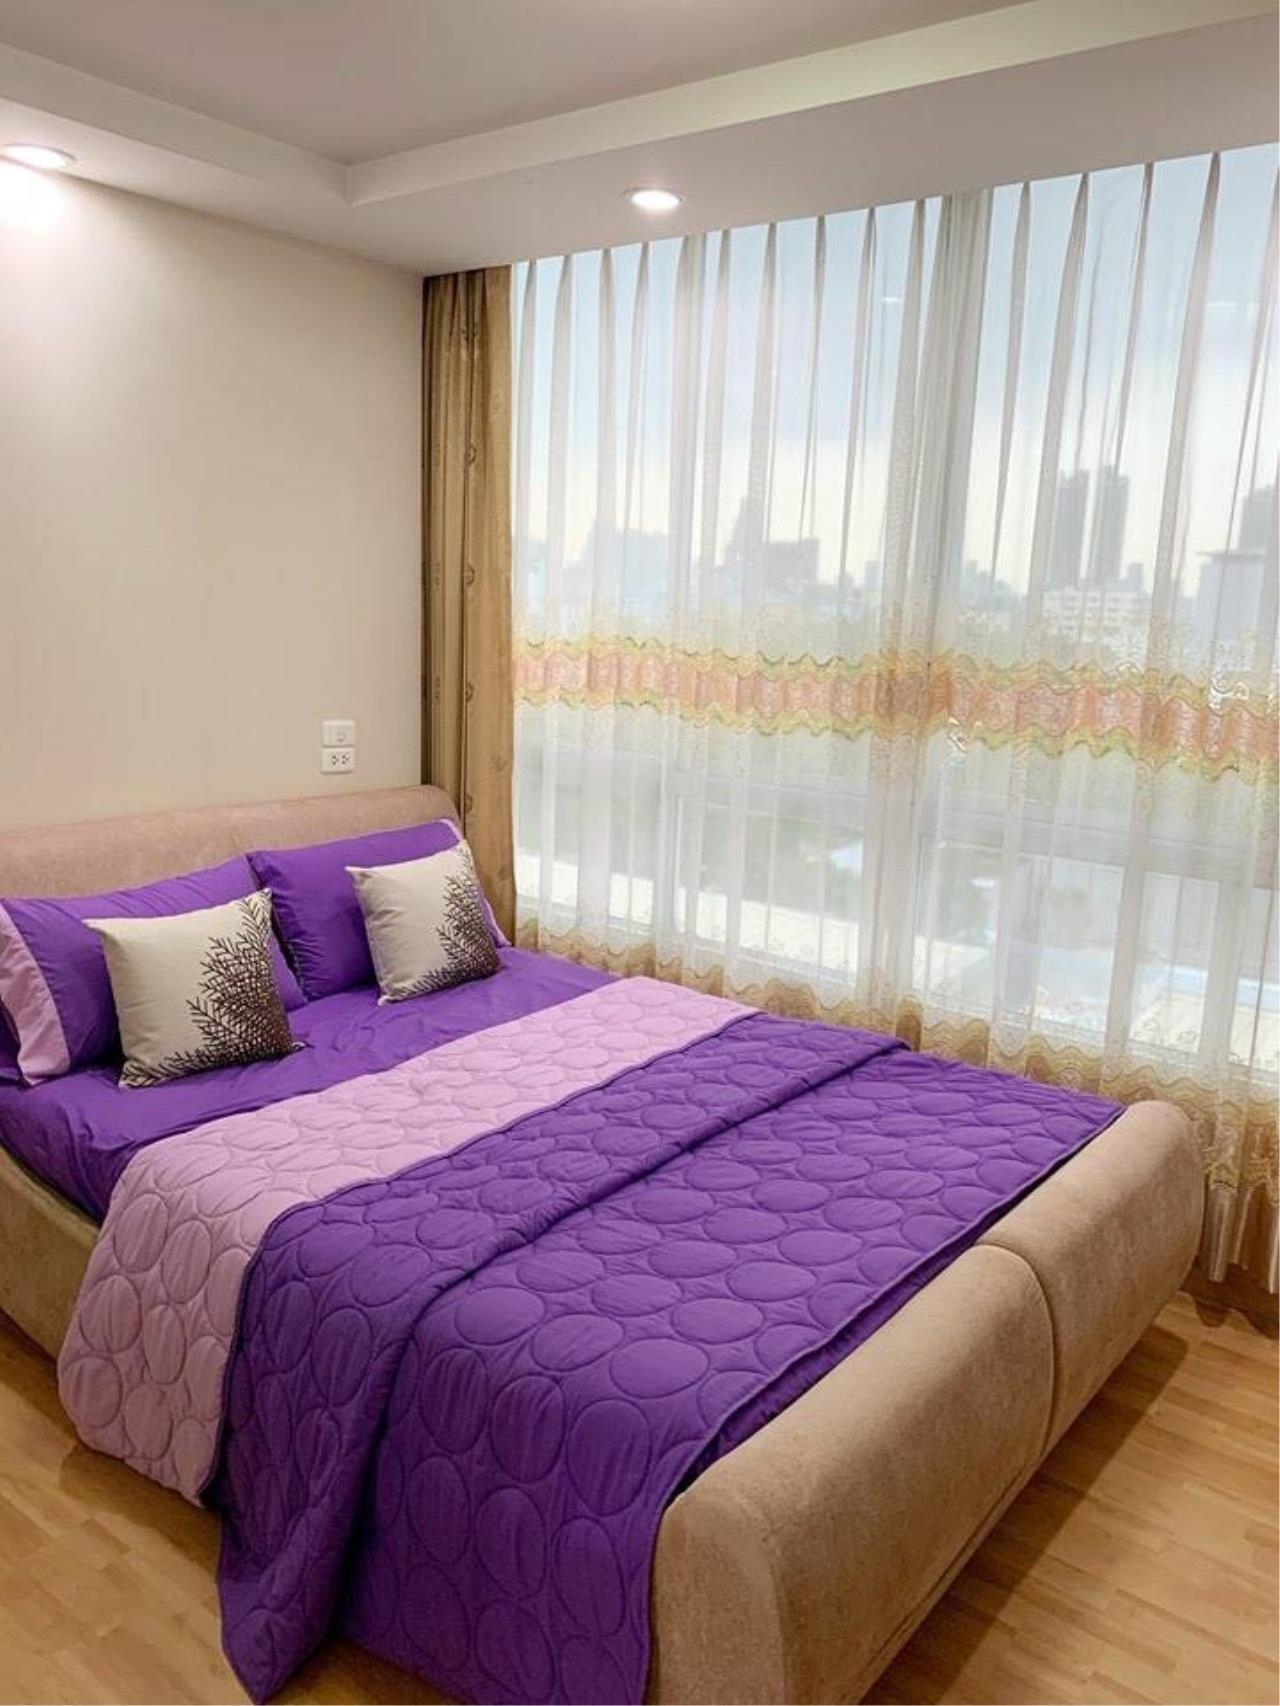 First Choice Properties by Su Agent Agency's KP037 RATCHADA CITY 18 for sale 1.87 M. 1bedroom. 34 sq.m. @MRT Huai Khwang 2